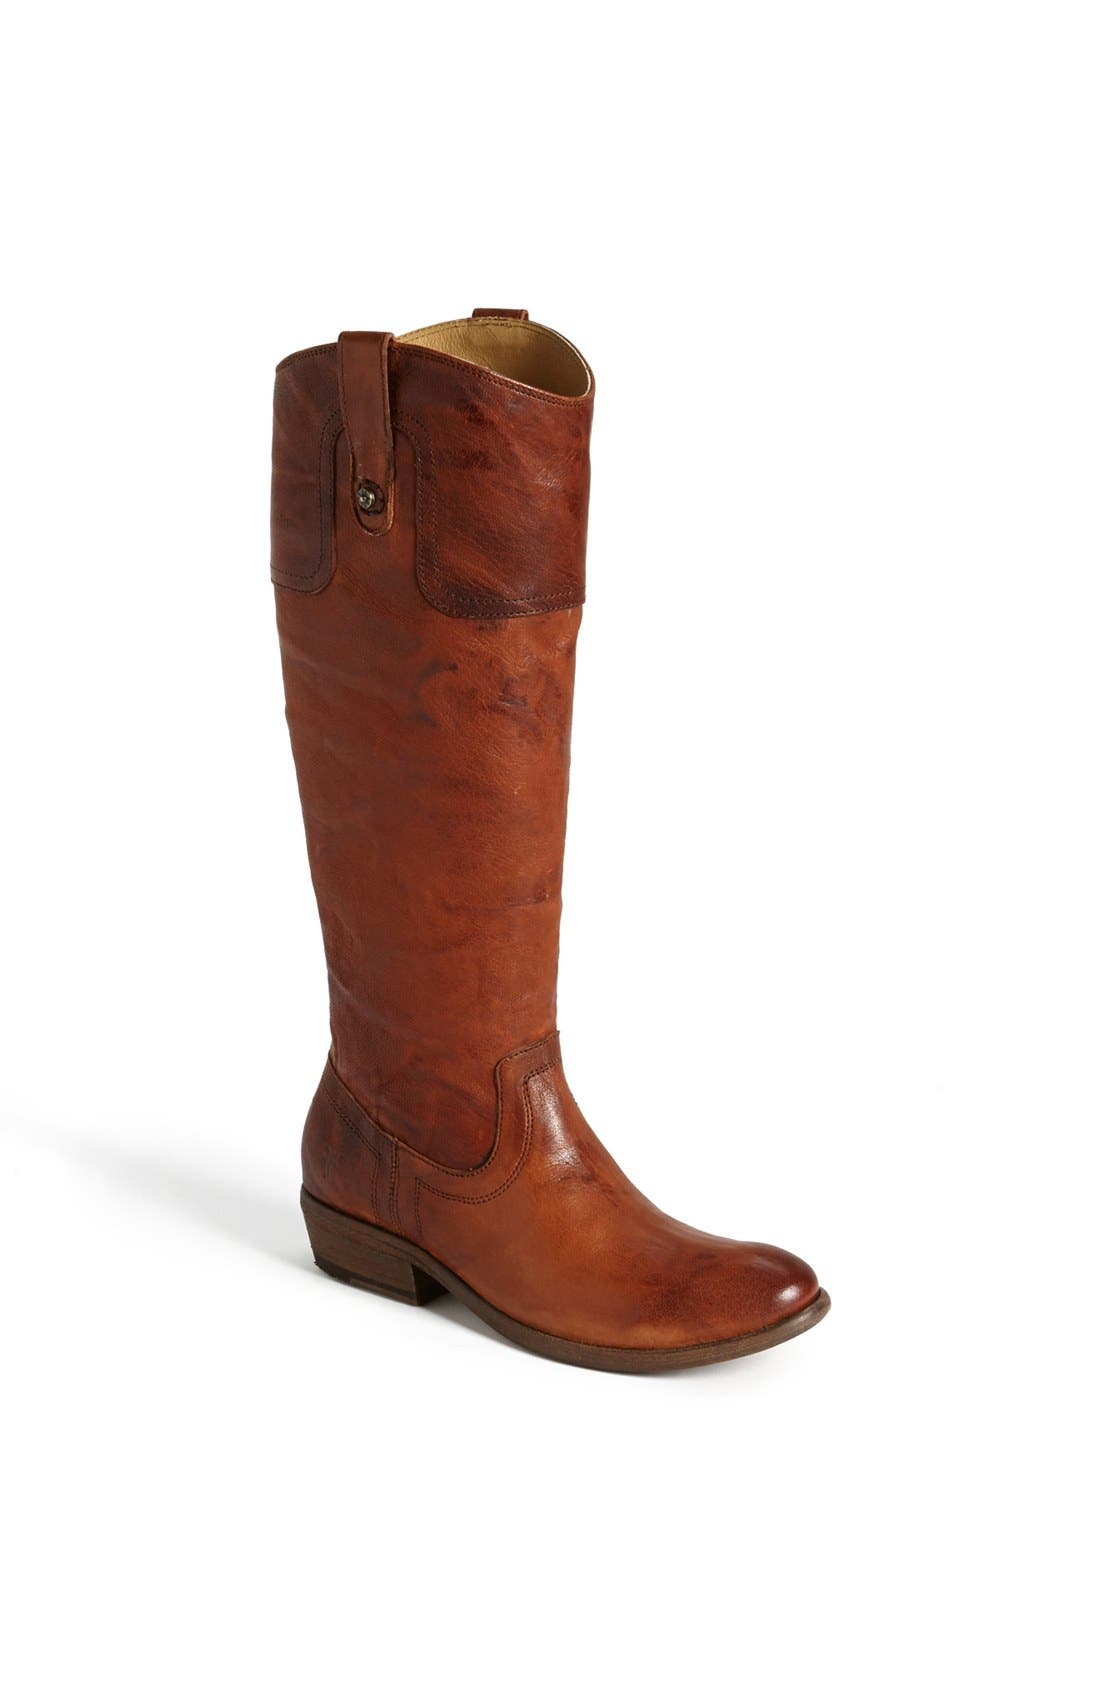 Alternate Image 1 Selected - Frye 'Carson' Tall Riding Boot